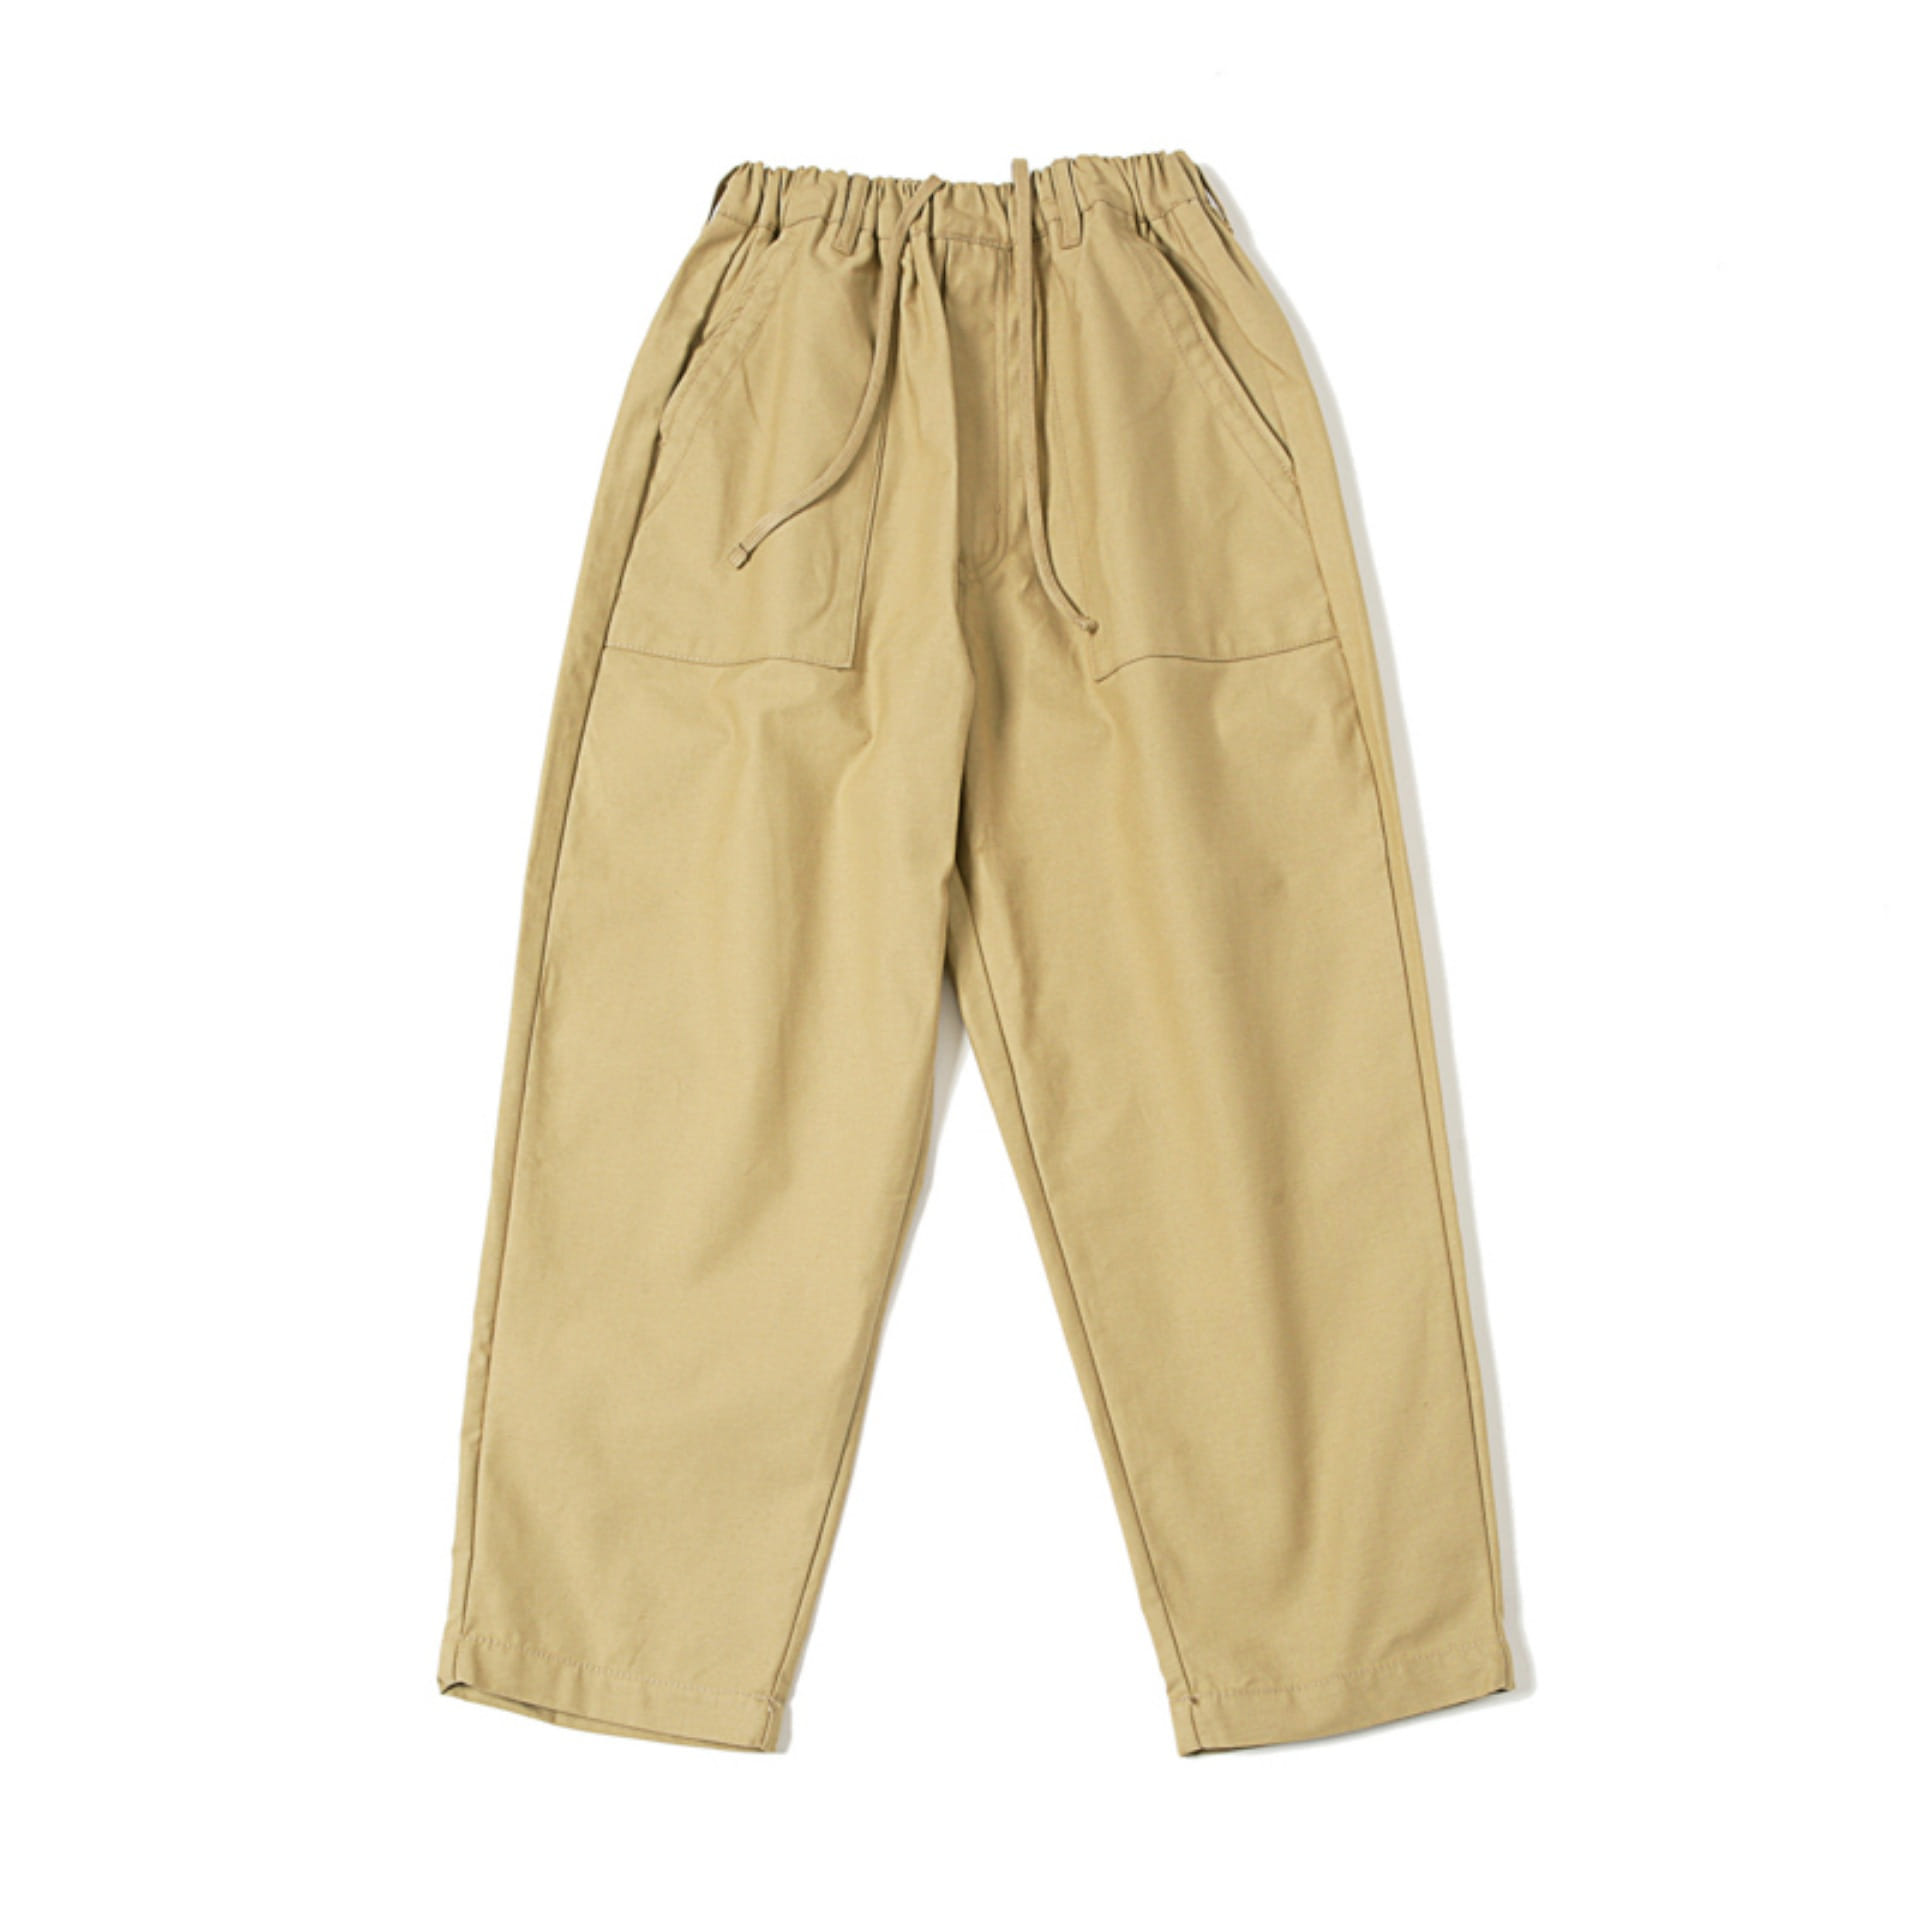 EASY FATIGUE PANTS (CHINO)